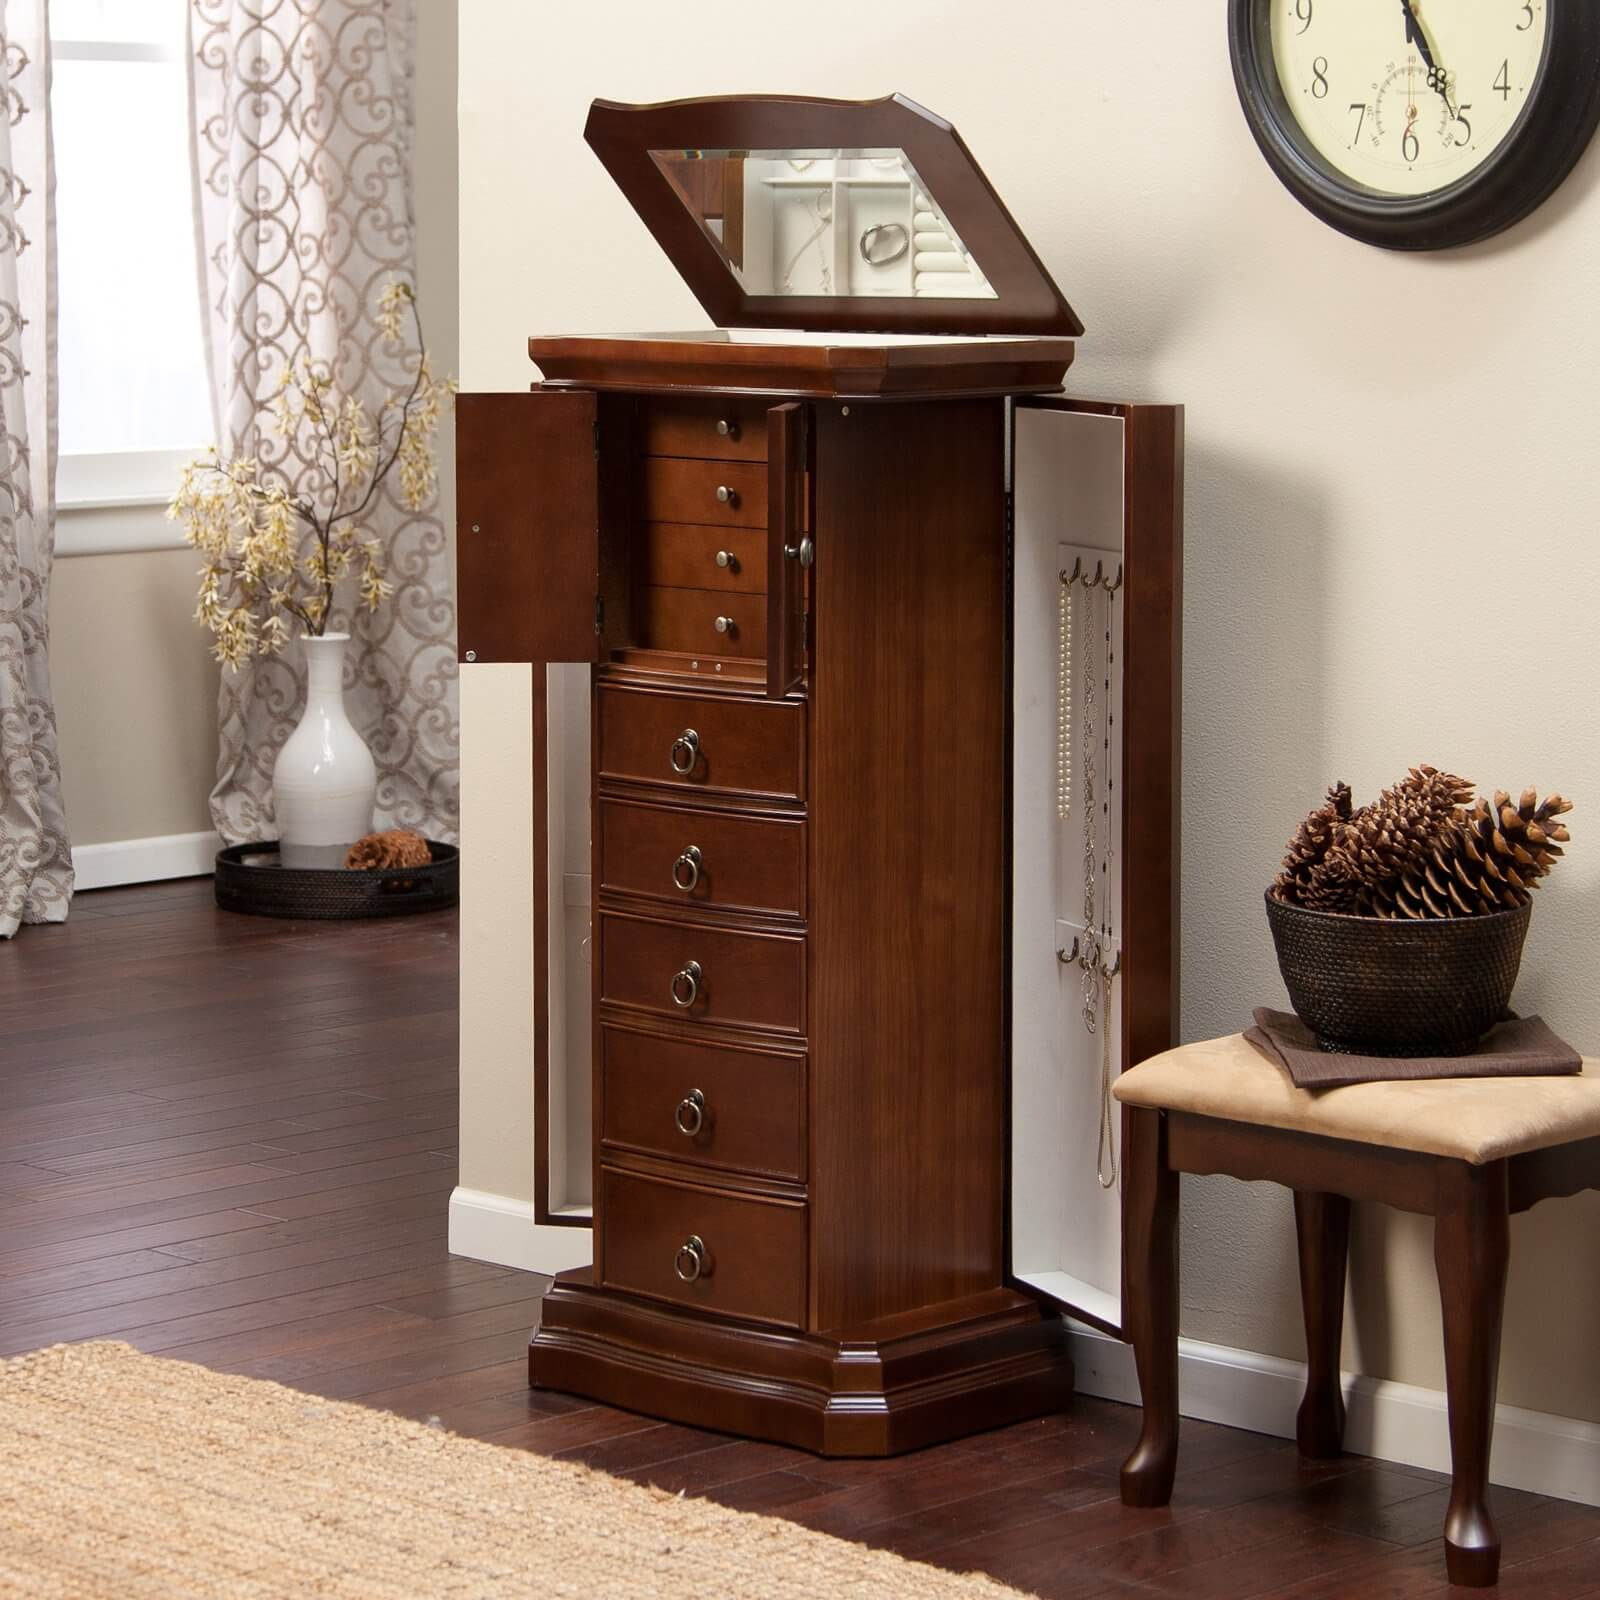 This elegant wooden option features a number of drawers in varying sizes, along with two doors on either side that open to reveal necklace storage. The top conceals ring storage and a mirror.